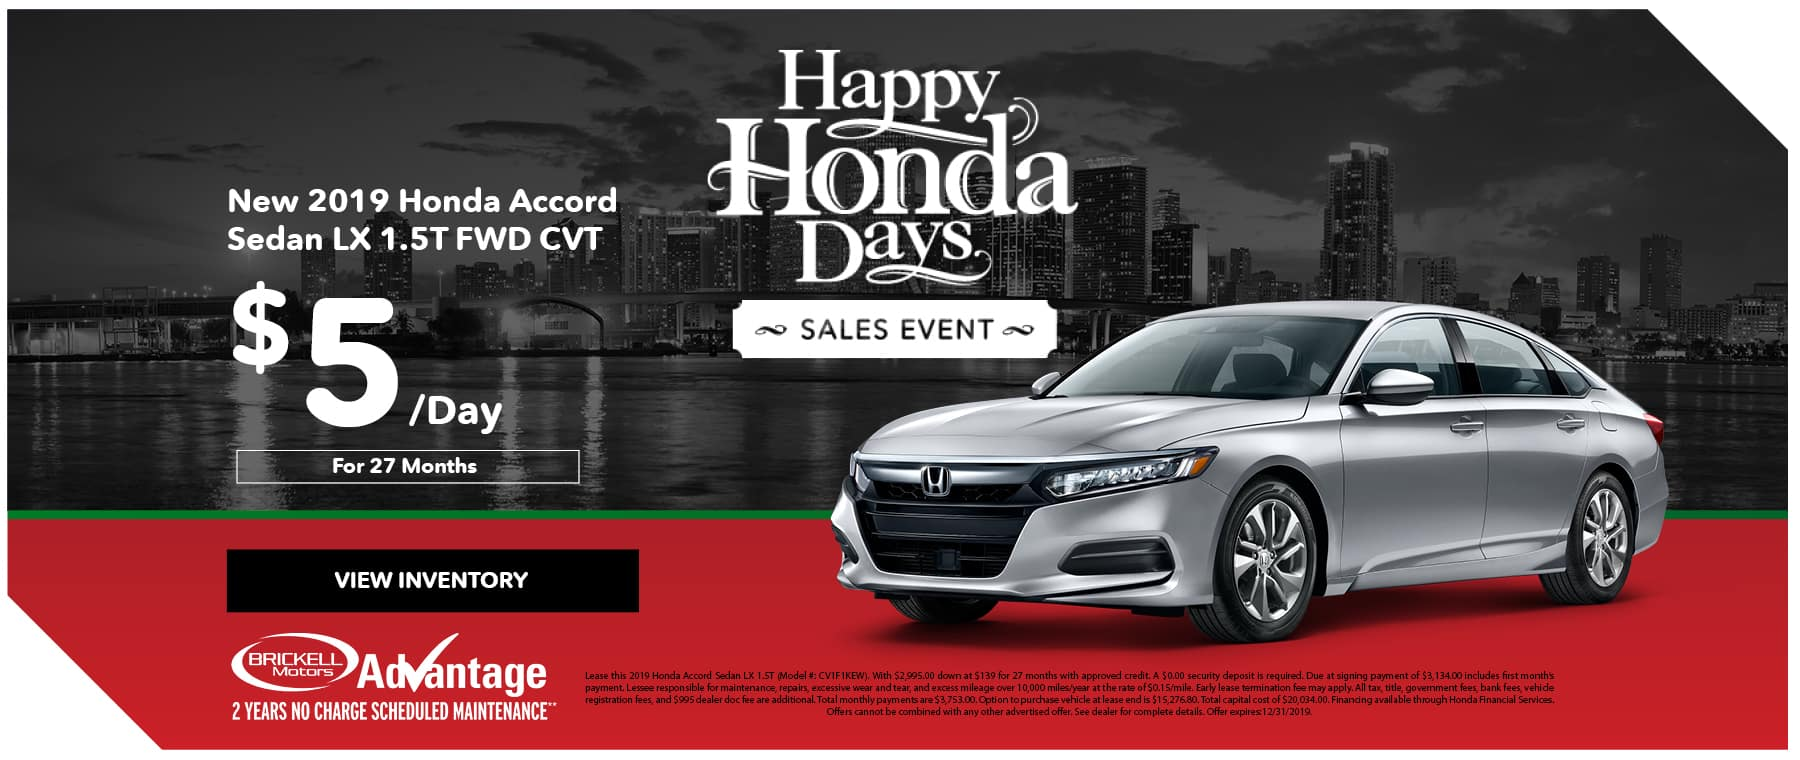 Happy Honda Days Accord